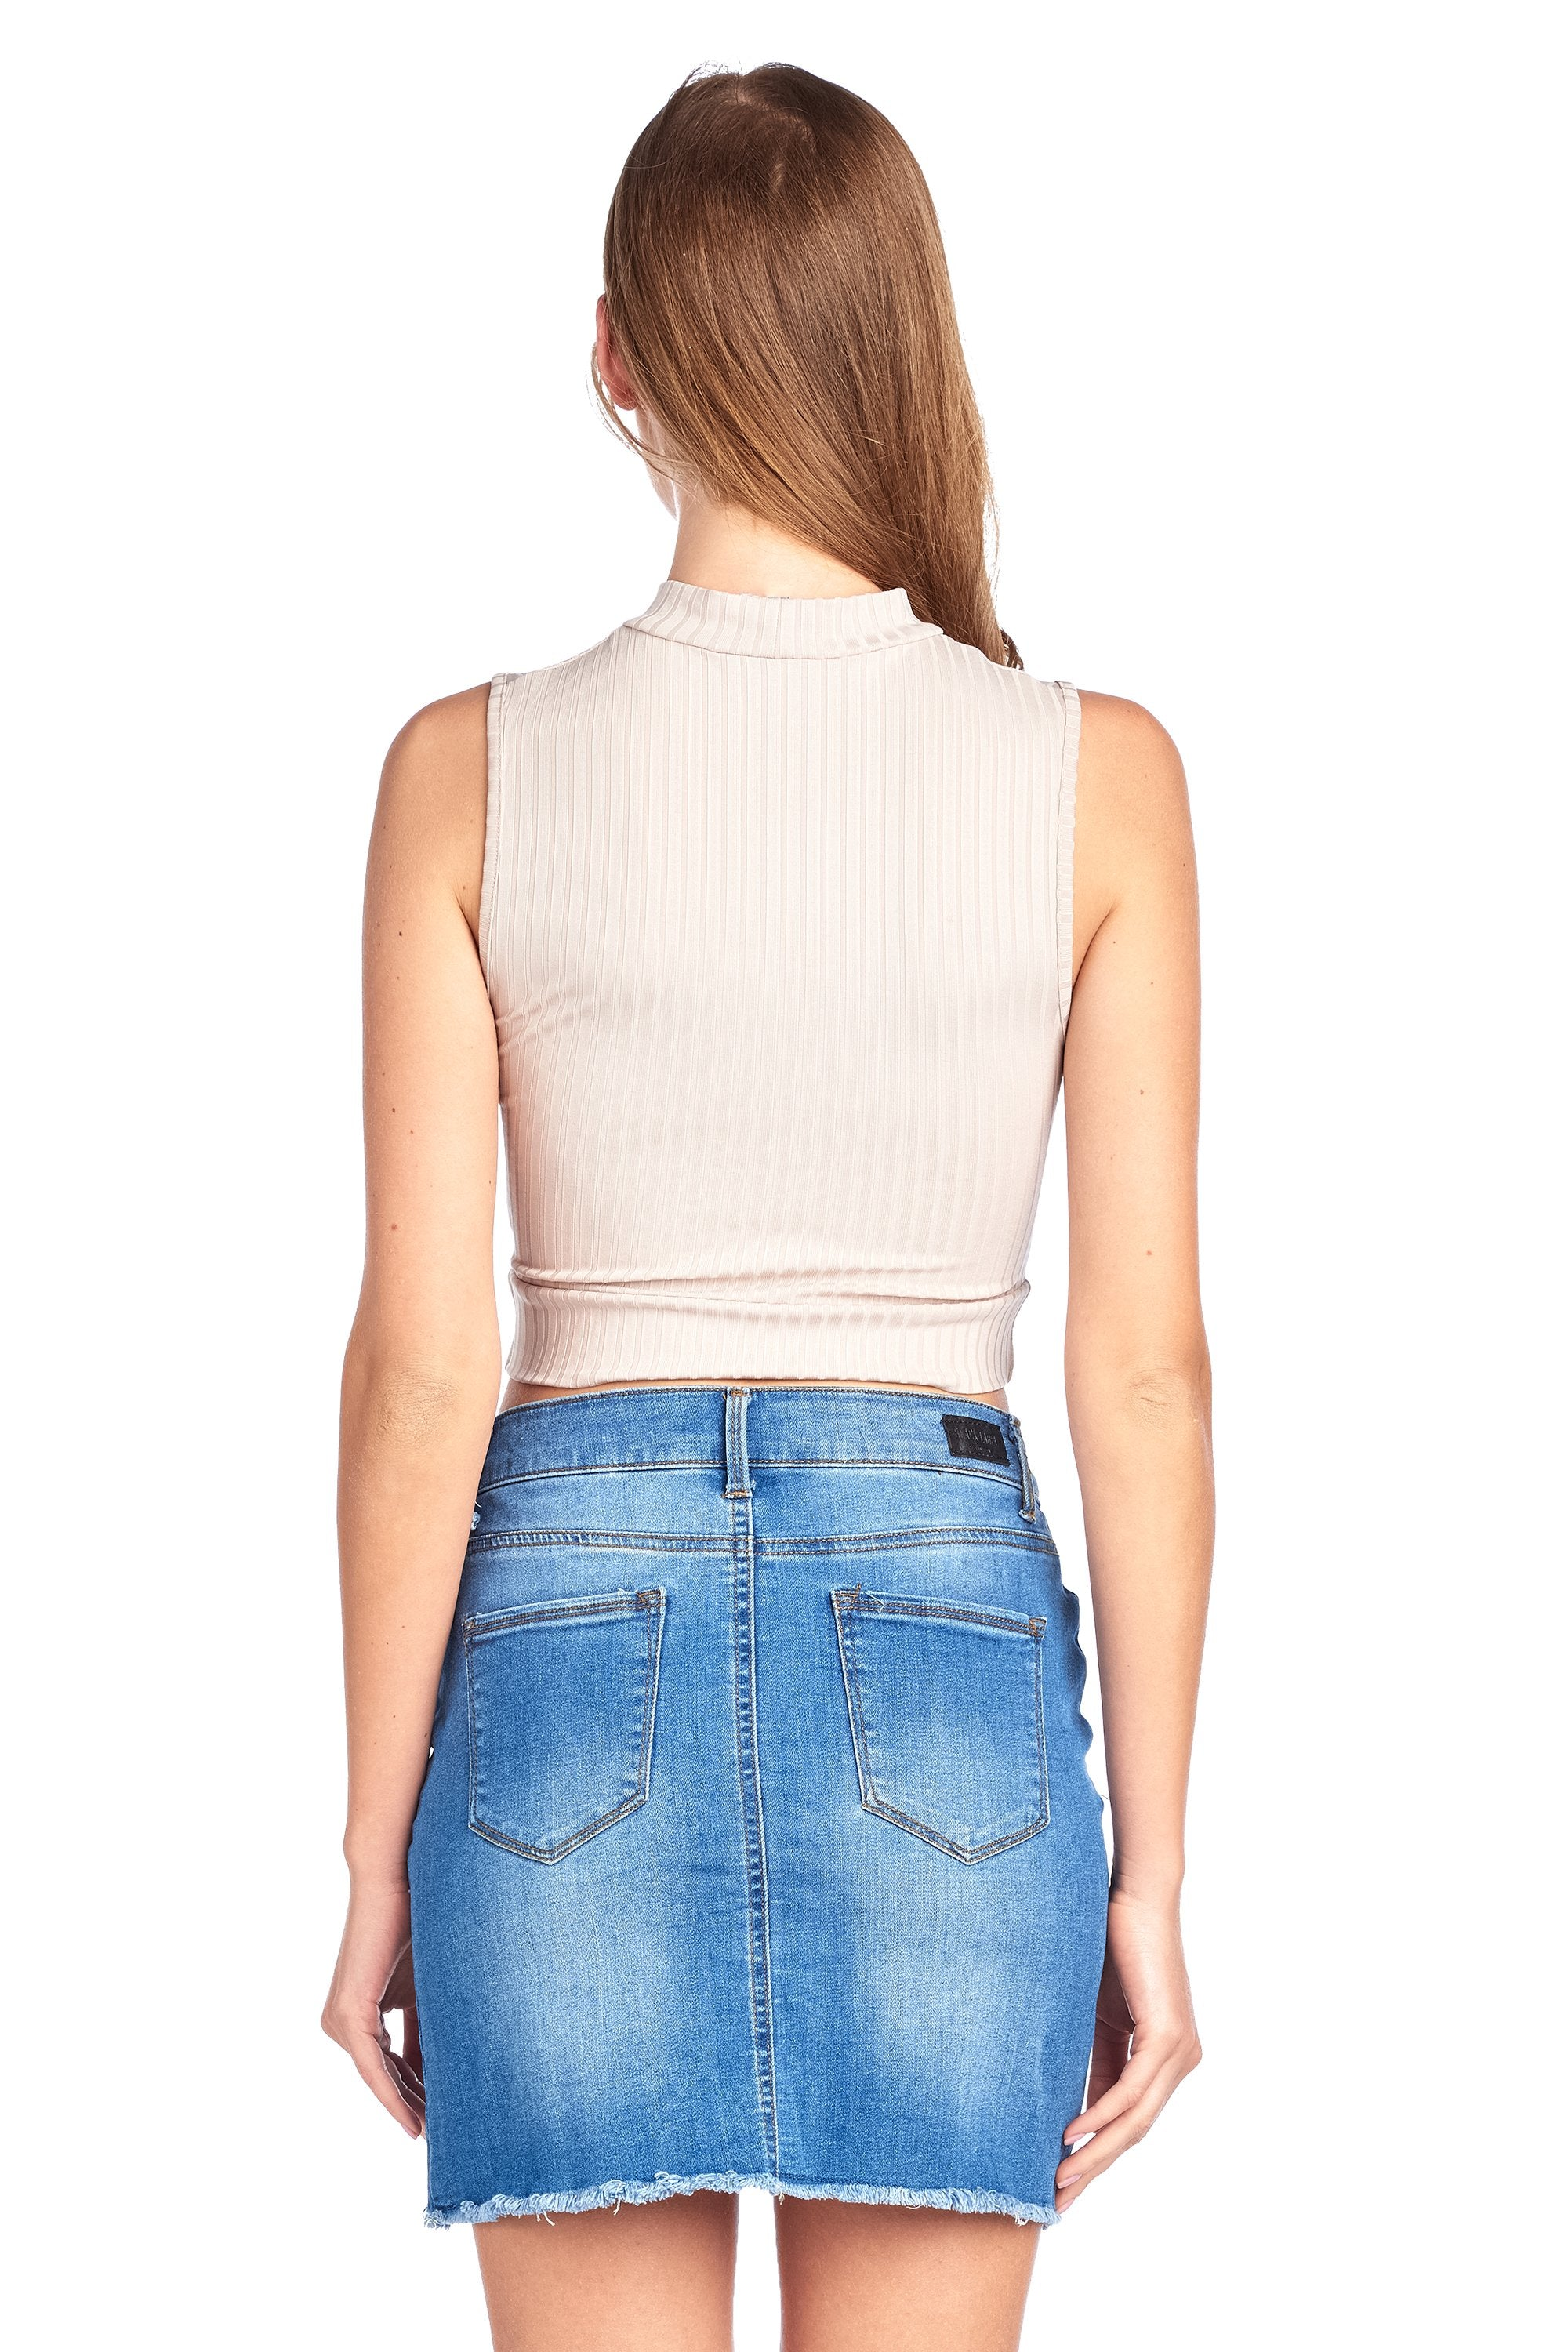 Sleeveless Ribbed Twist Front Mock Neck Fitted Stretch Crop Tank Top